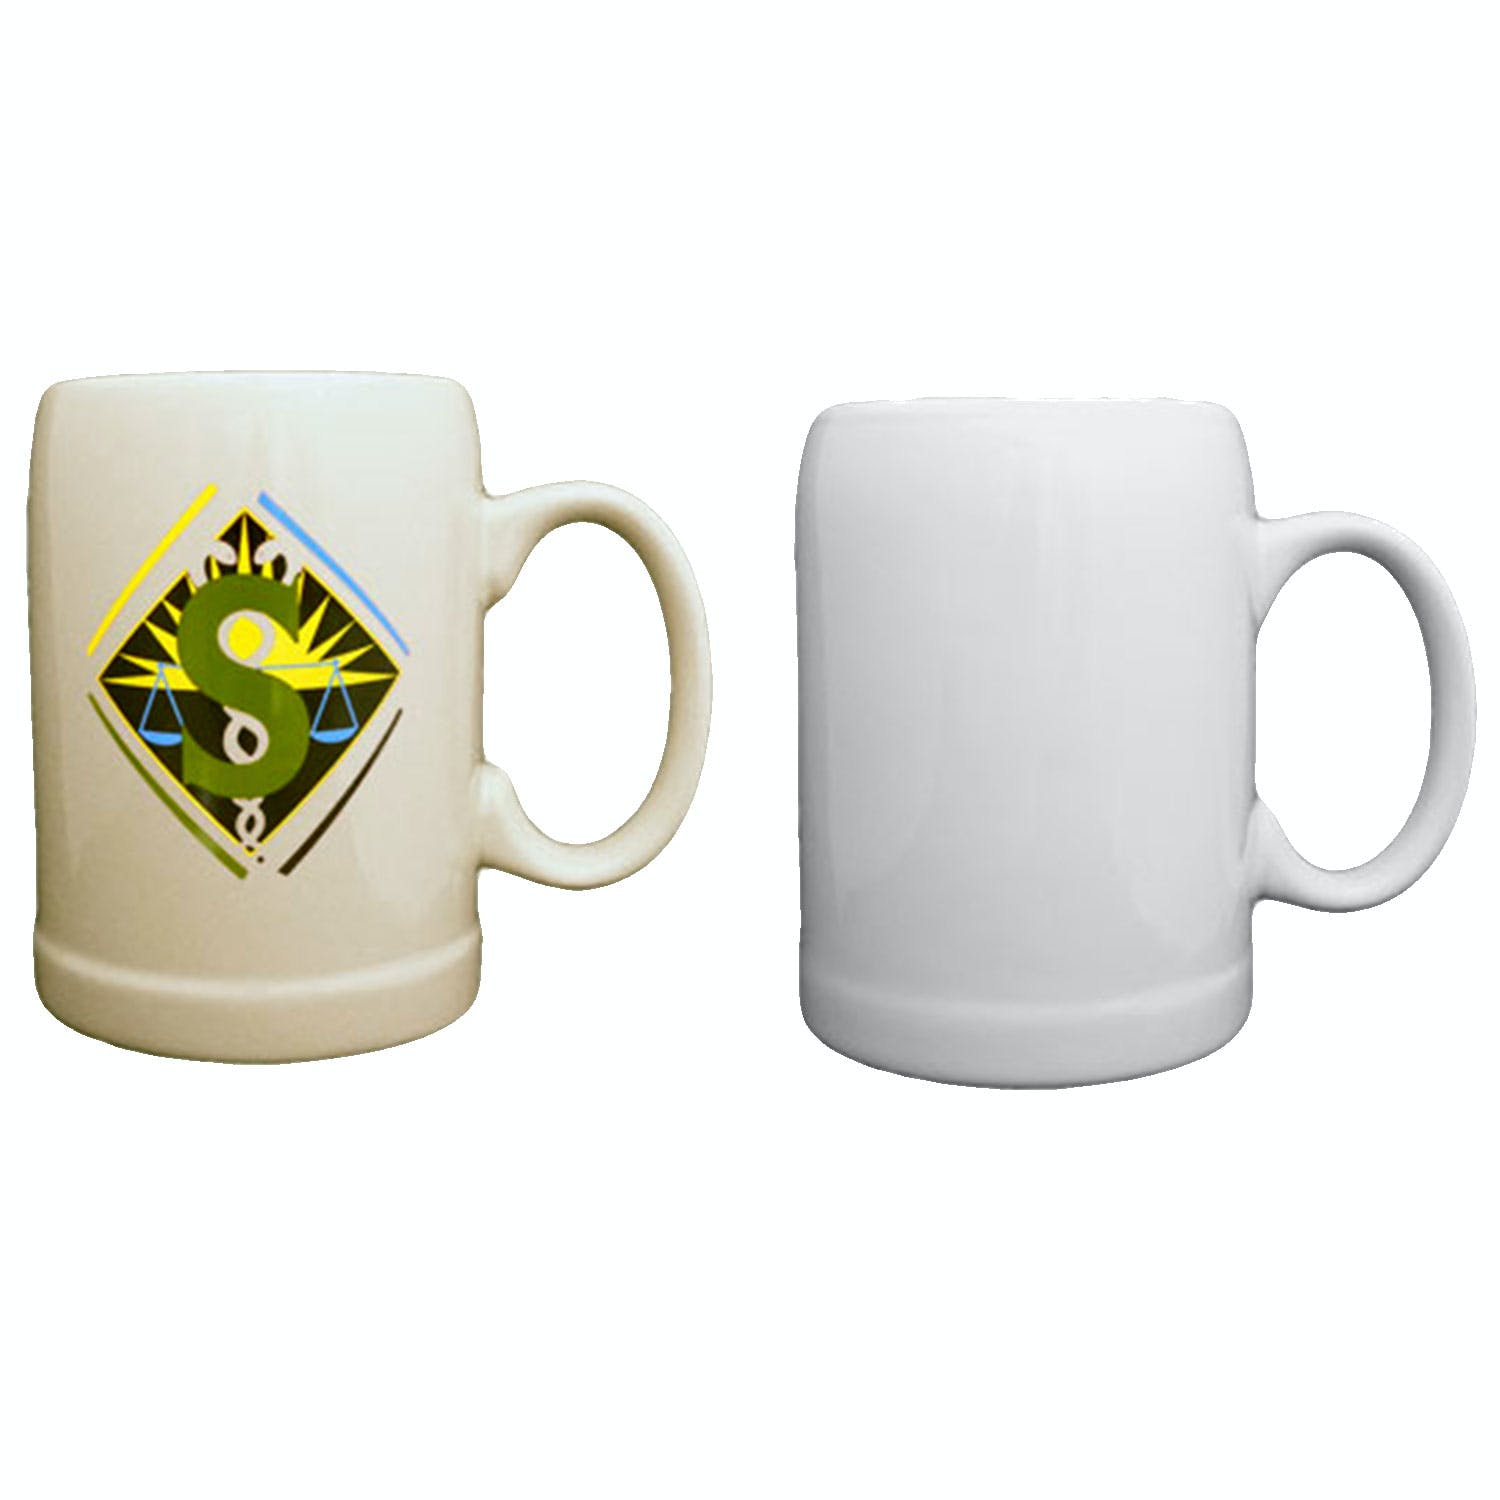 20oz Ceramic Beer steins, available in white and natural beige! Beer glass sold by PyroGraphics